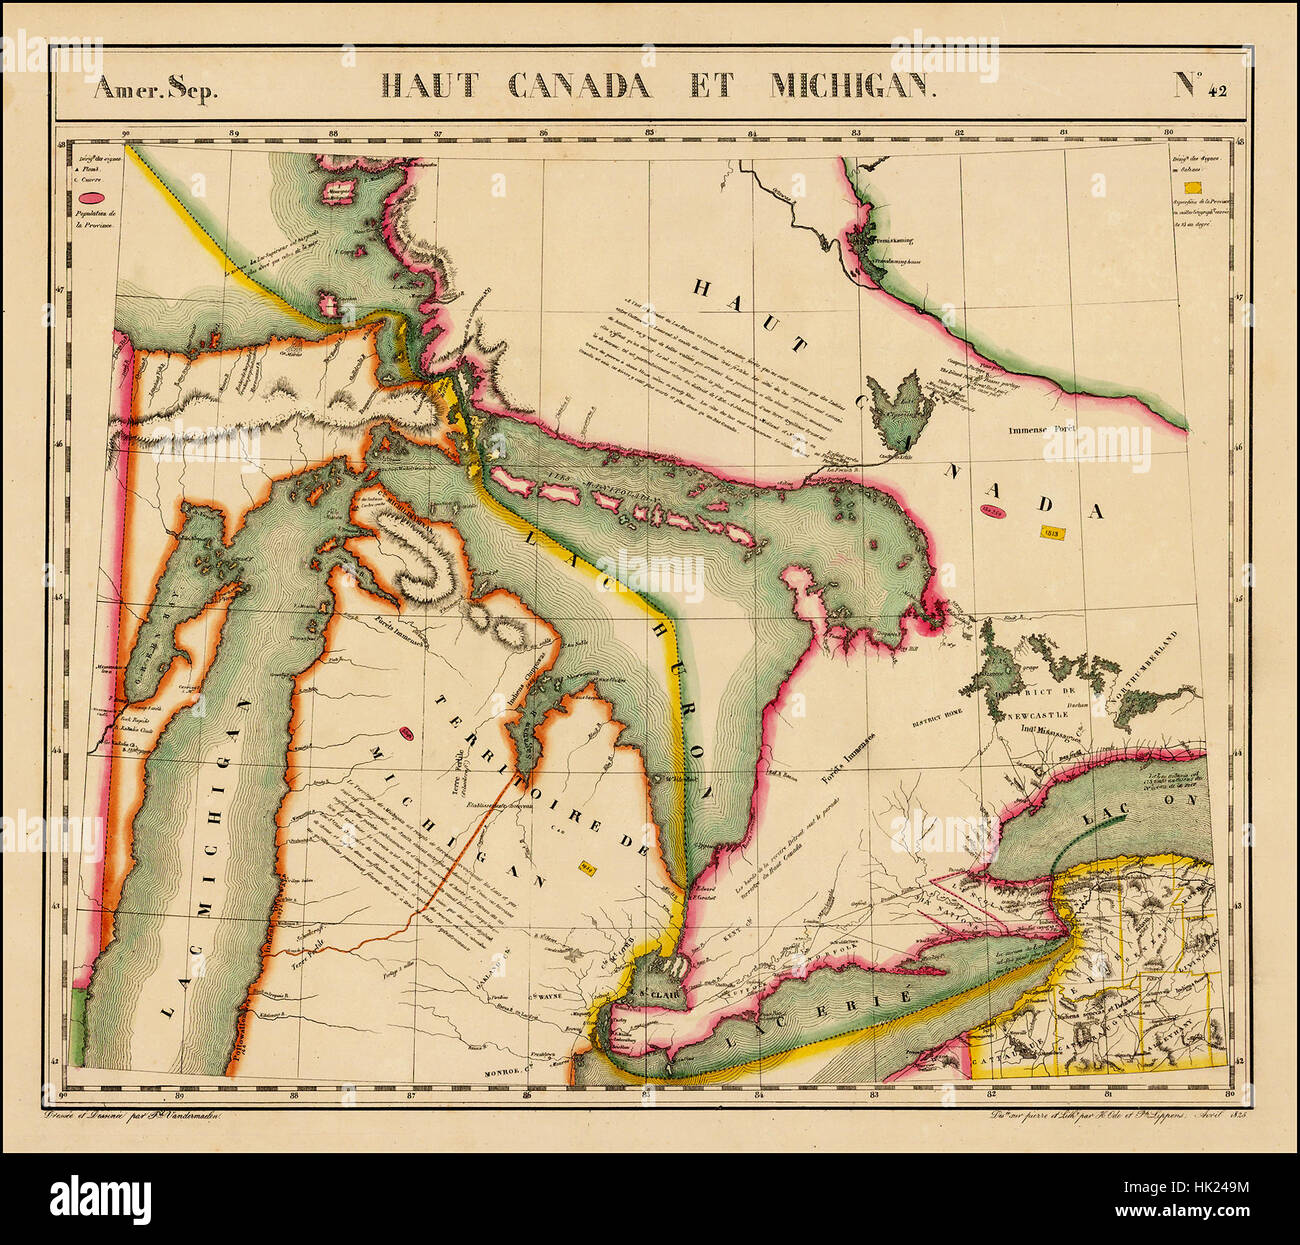 map of the great lakes 1825 stock image